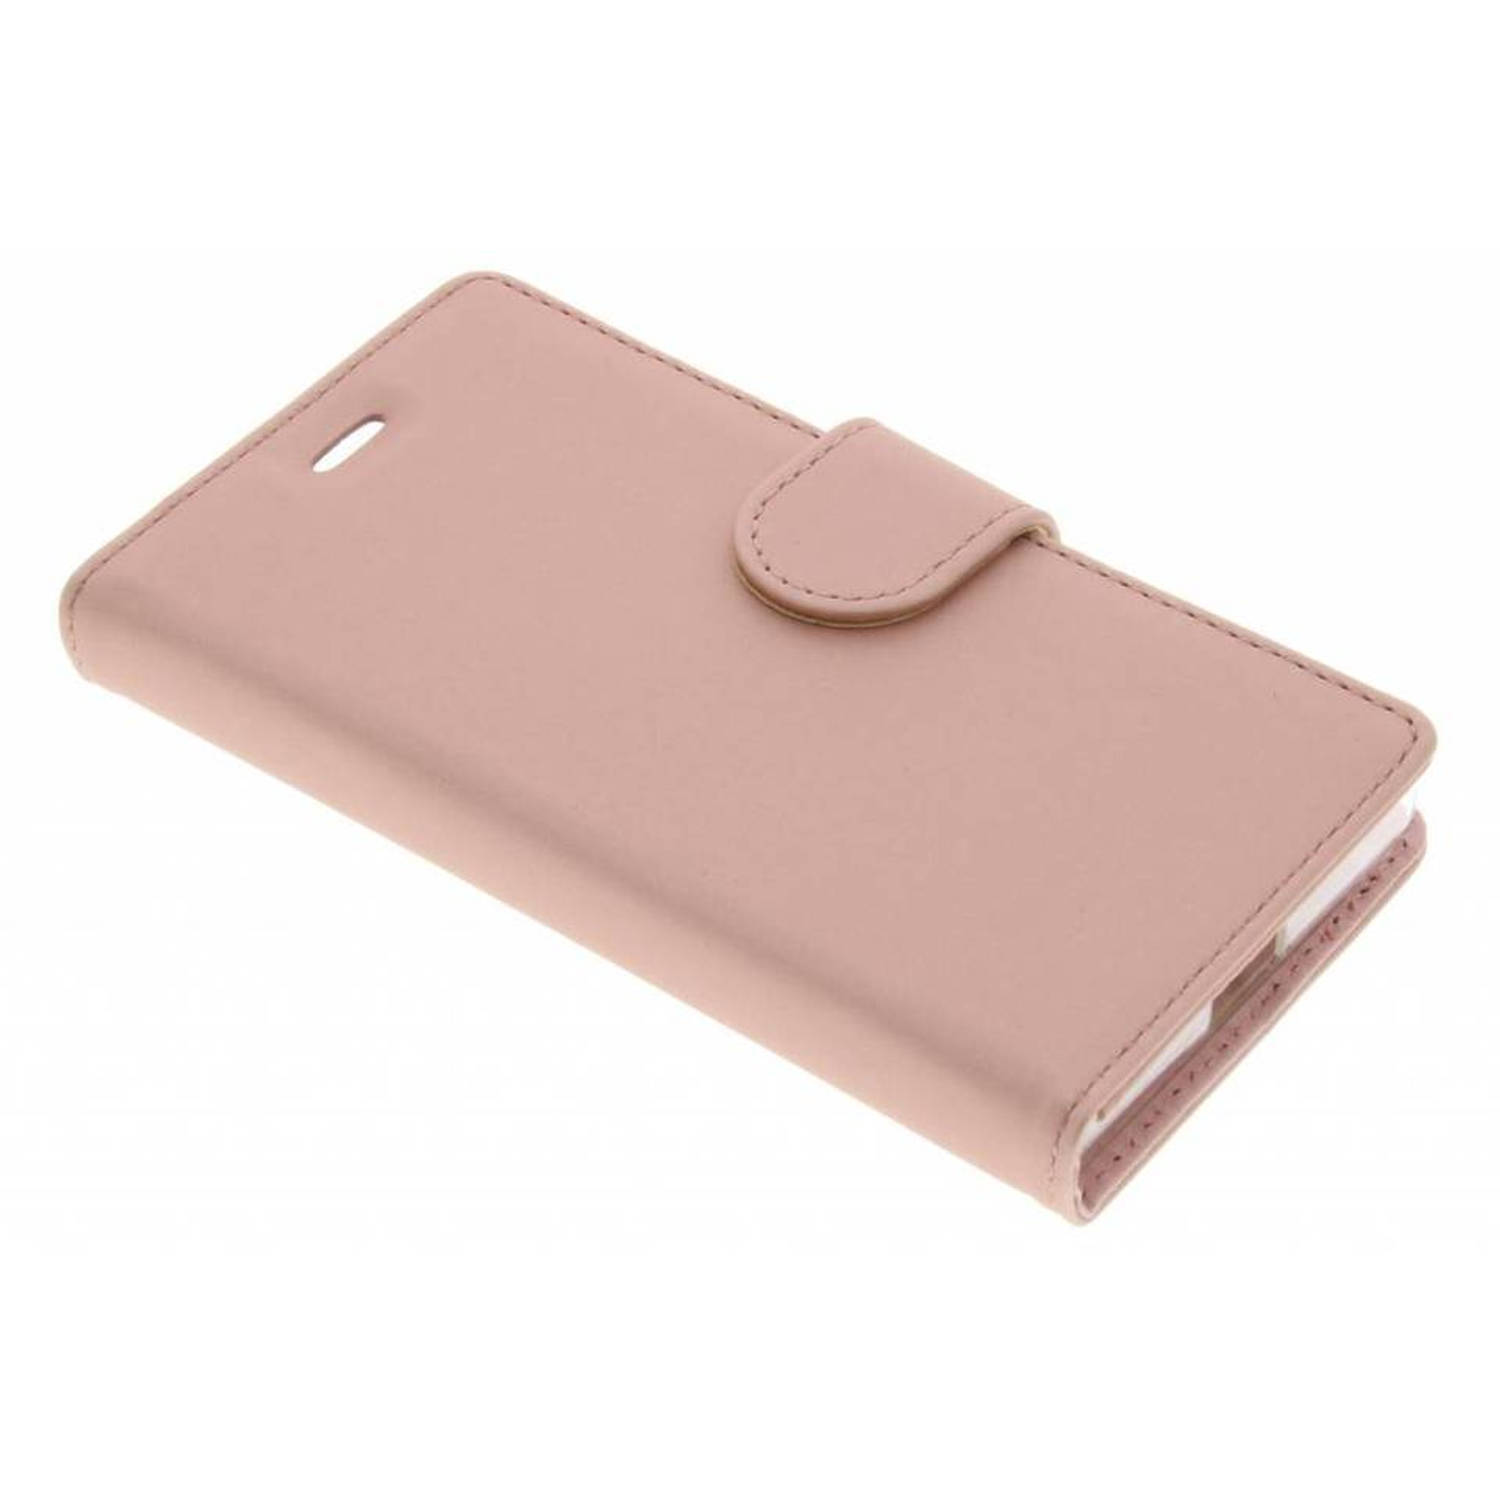 Wallet tpu booklet voor de sony xperia x compact - rose gold